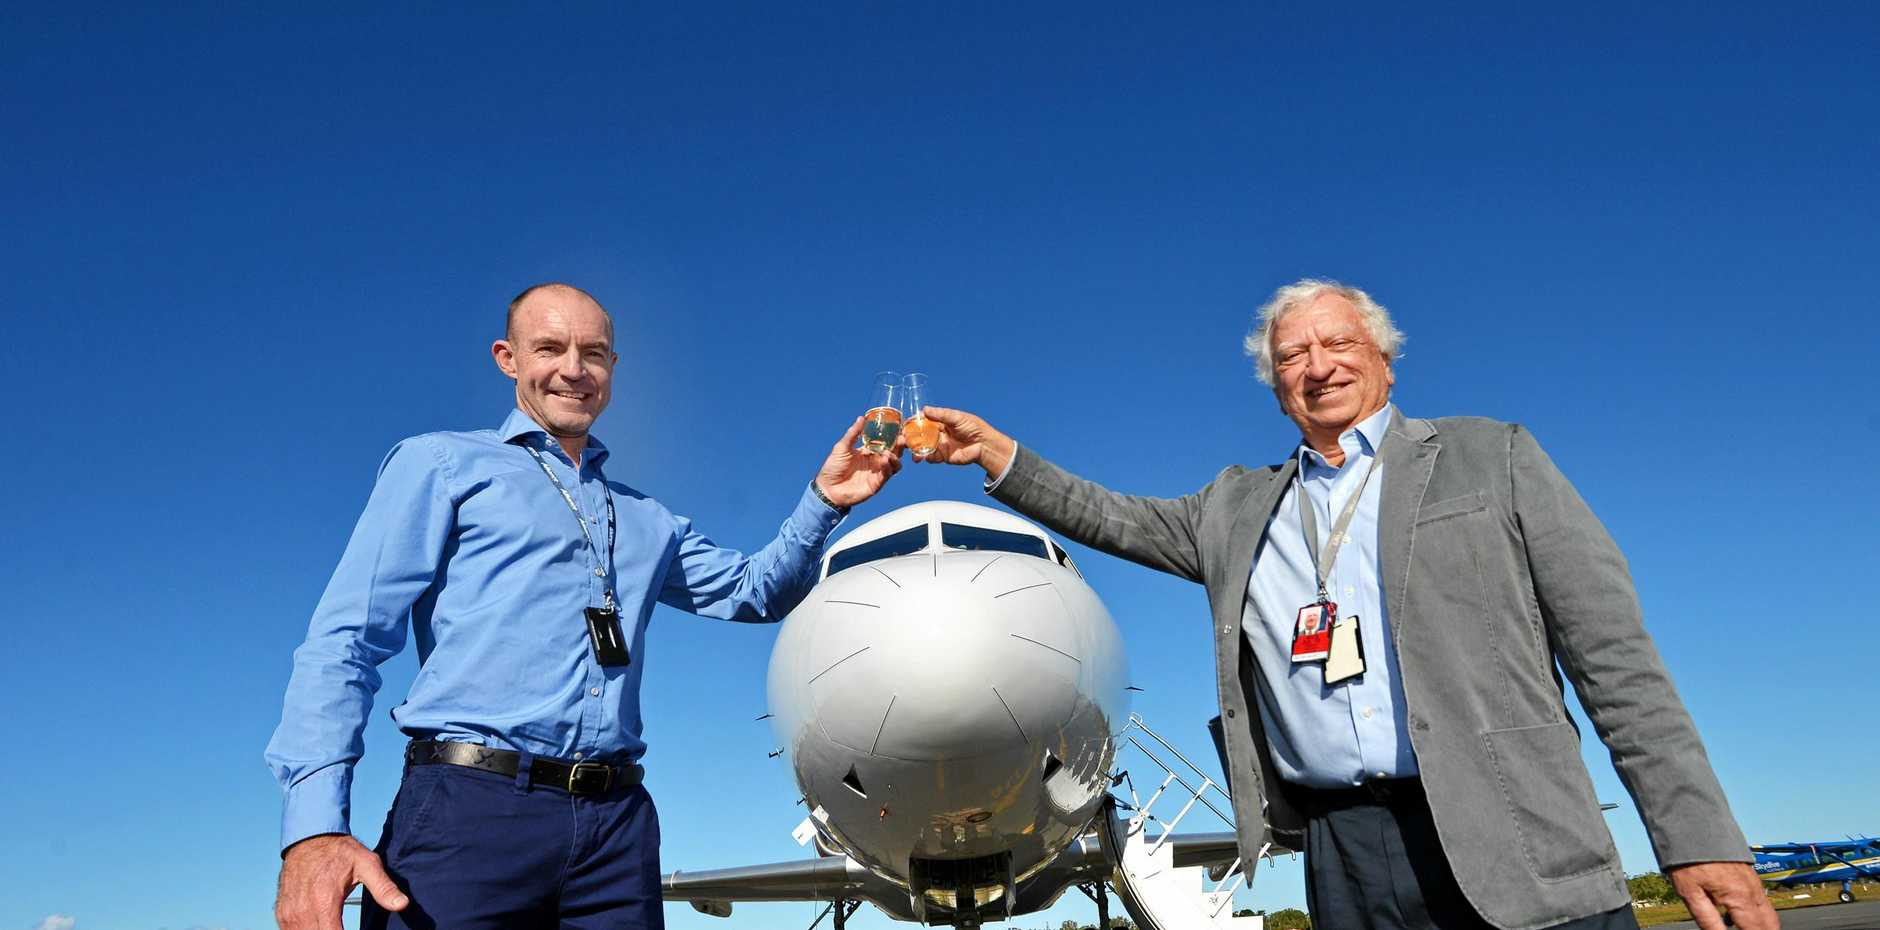 The Fokker 70 Corporate Airliner touches down at the Sunshine Coast Airport. The airliner was previously owned by the Dutch royal family and will now operate under contract with Alliance Airlines. Alliance chief executive officer Lee Schofield (left) and Flights Options managing director Steve Padgett.